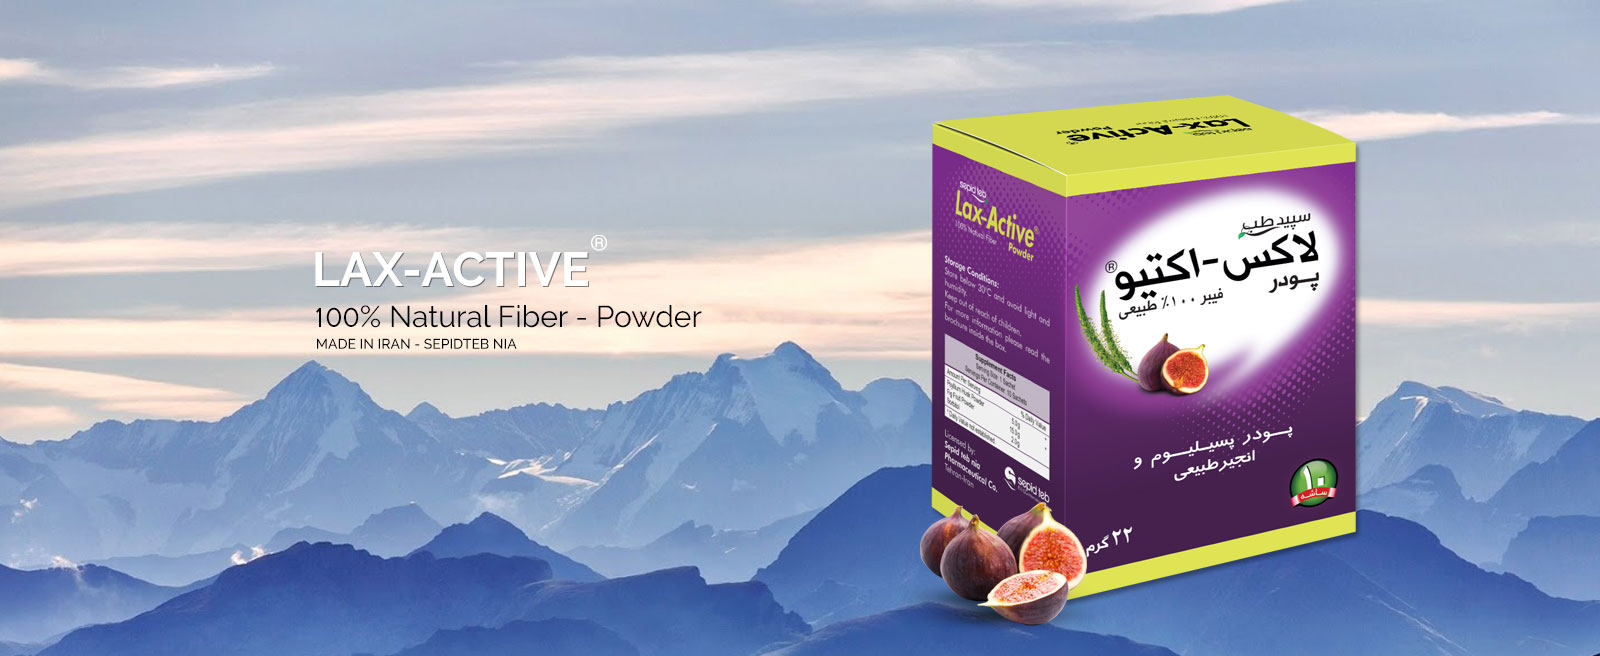 LAX ACTIVE POWDER